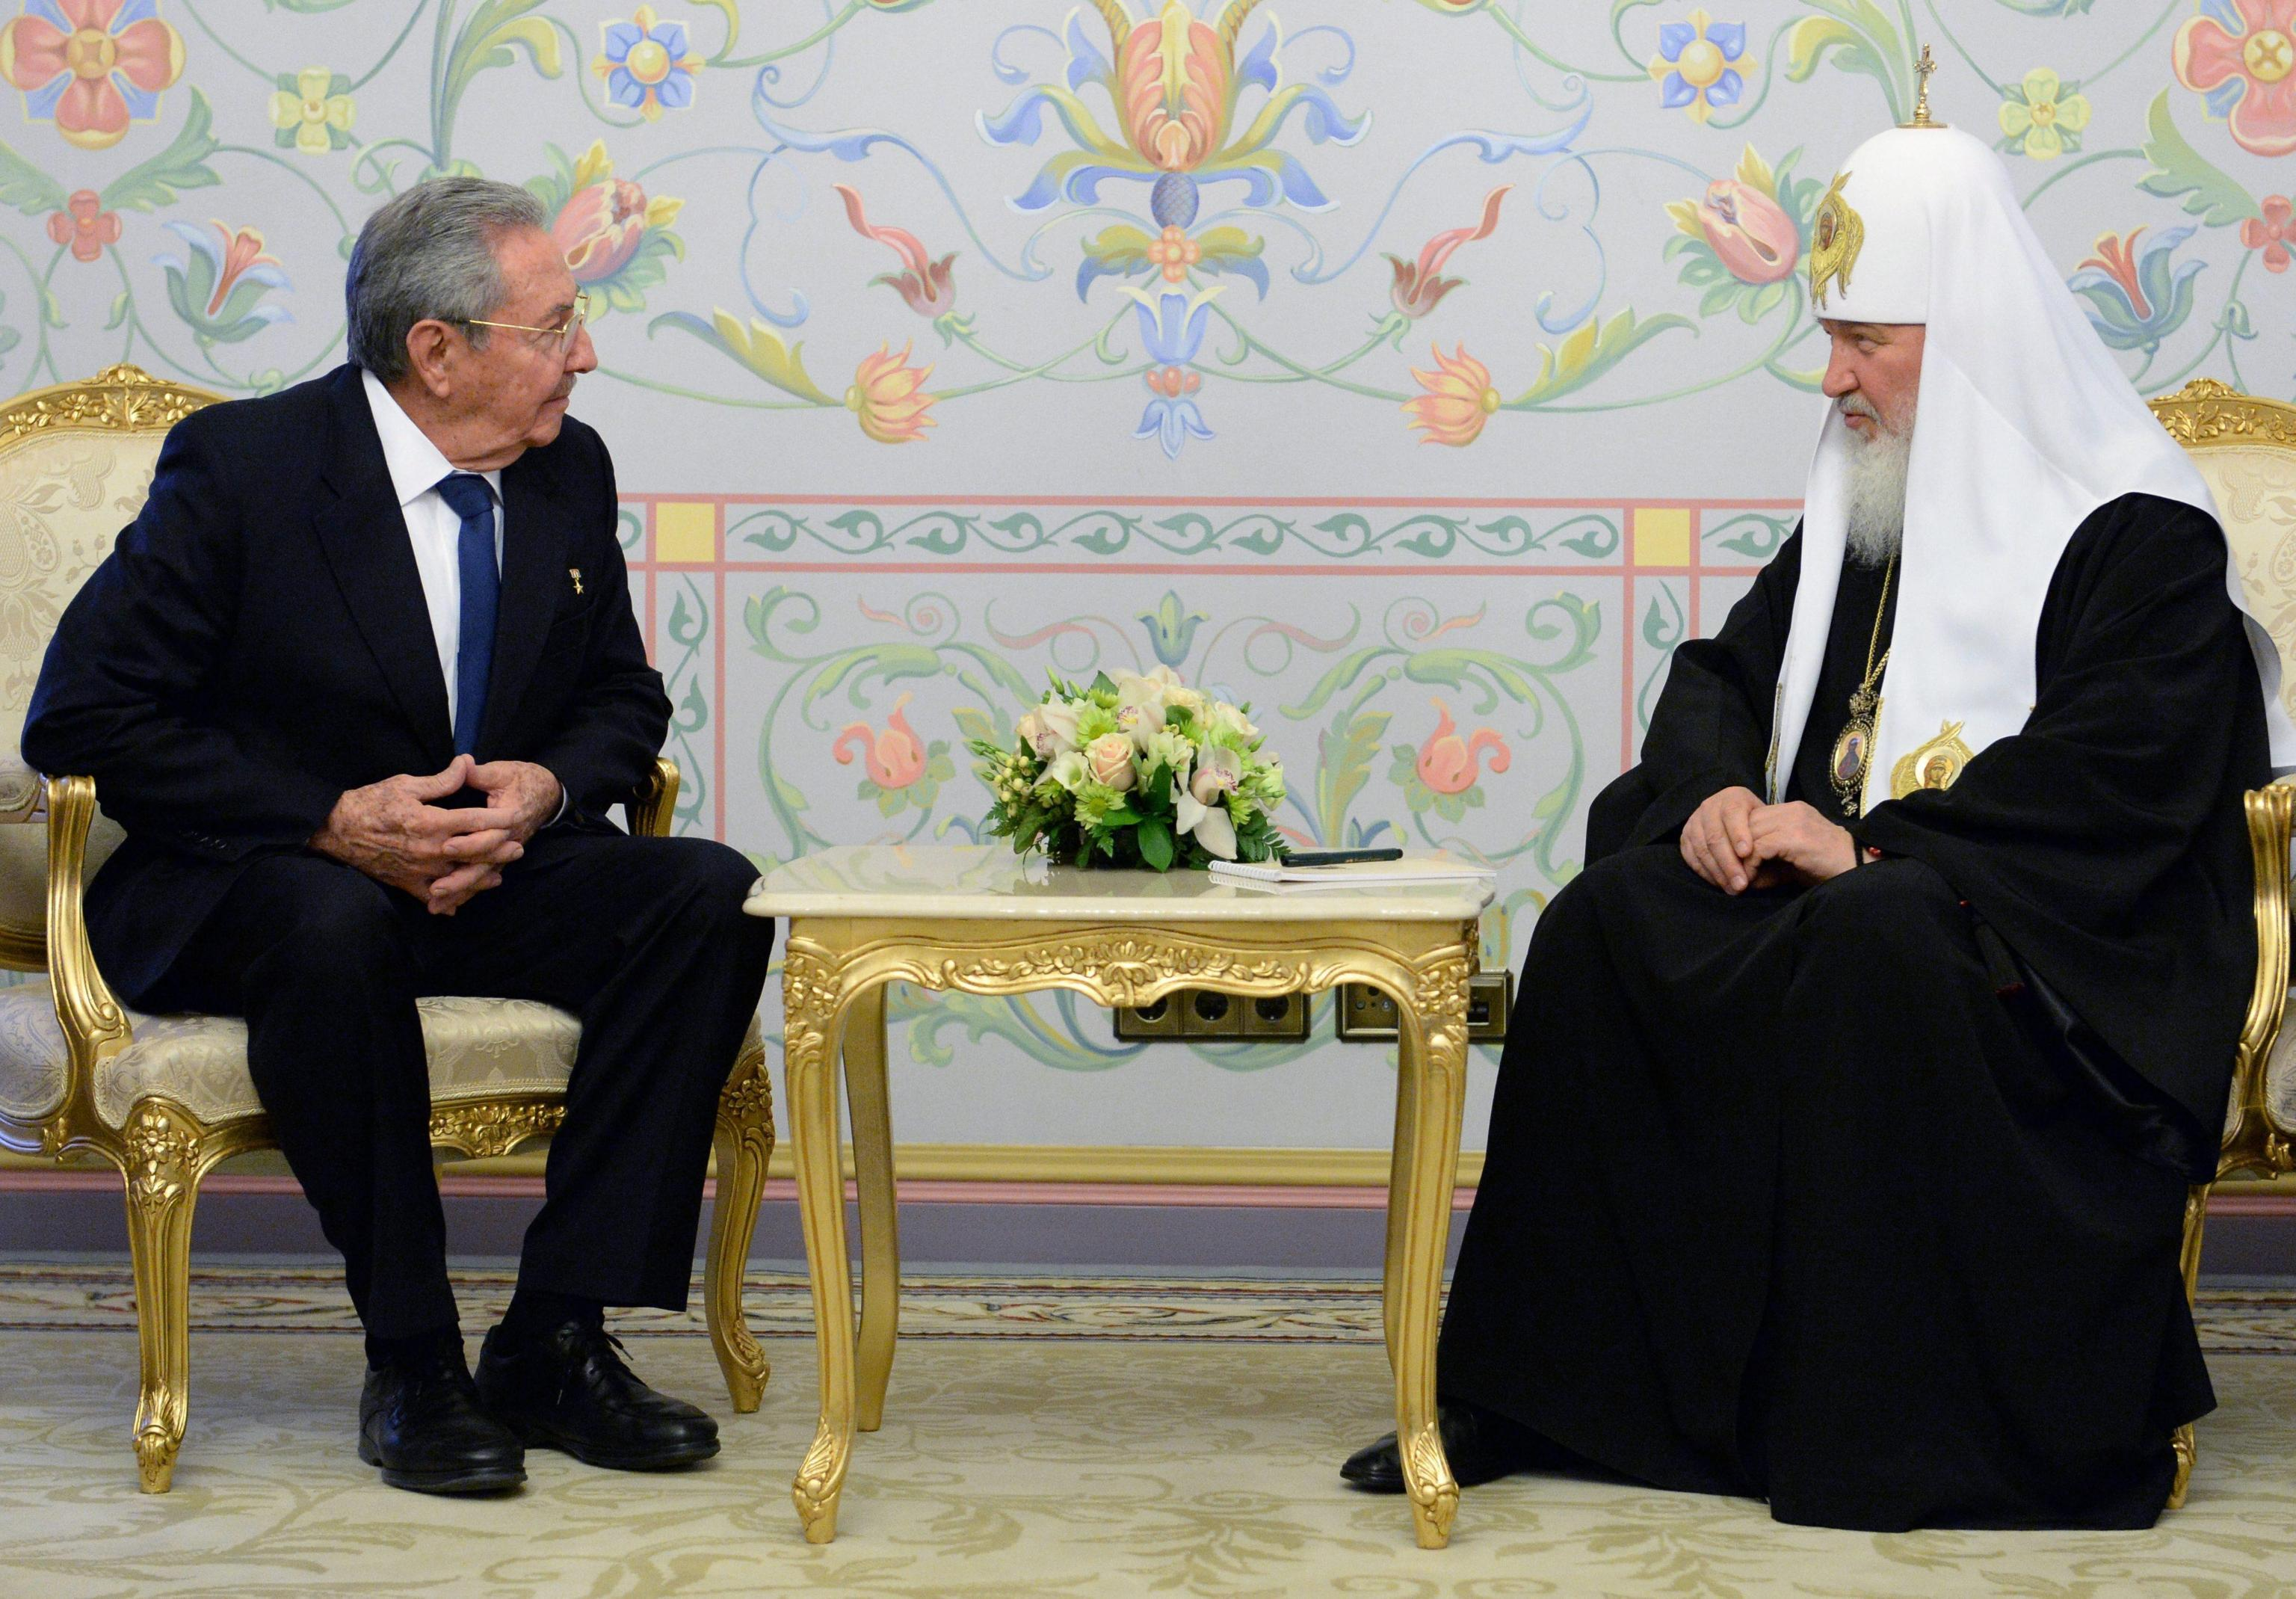 Cuban President Raul Castro (L) speaks with Patriarch of Moscow and all Russia